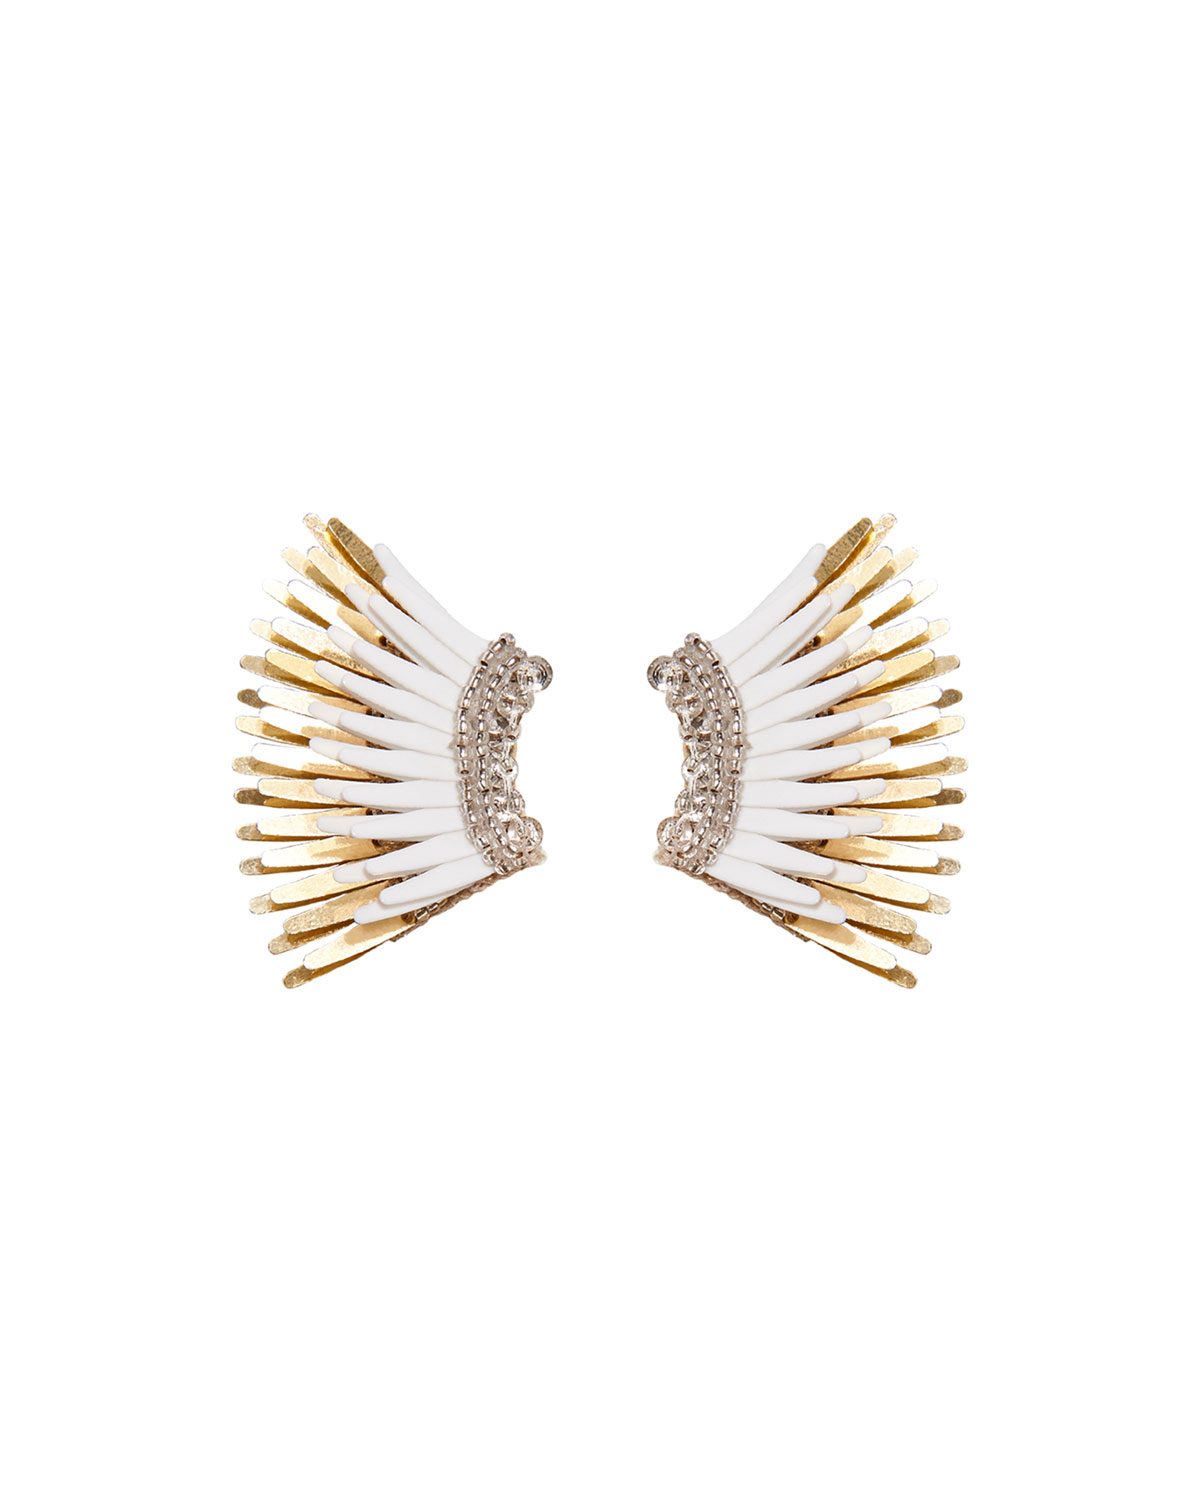 Mignonne Gavigan Mini Madeline Statement Earrings White